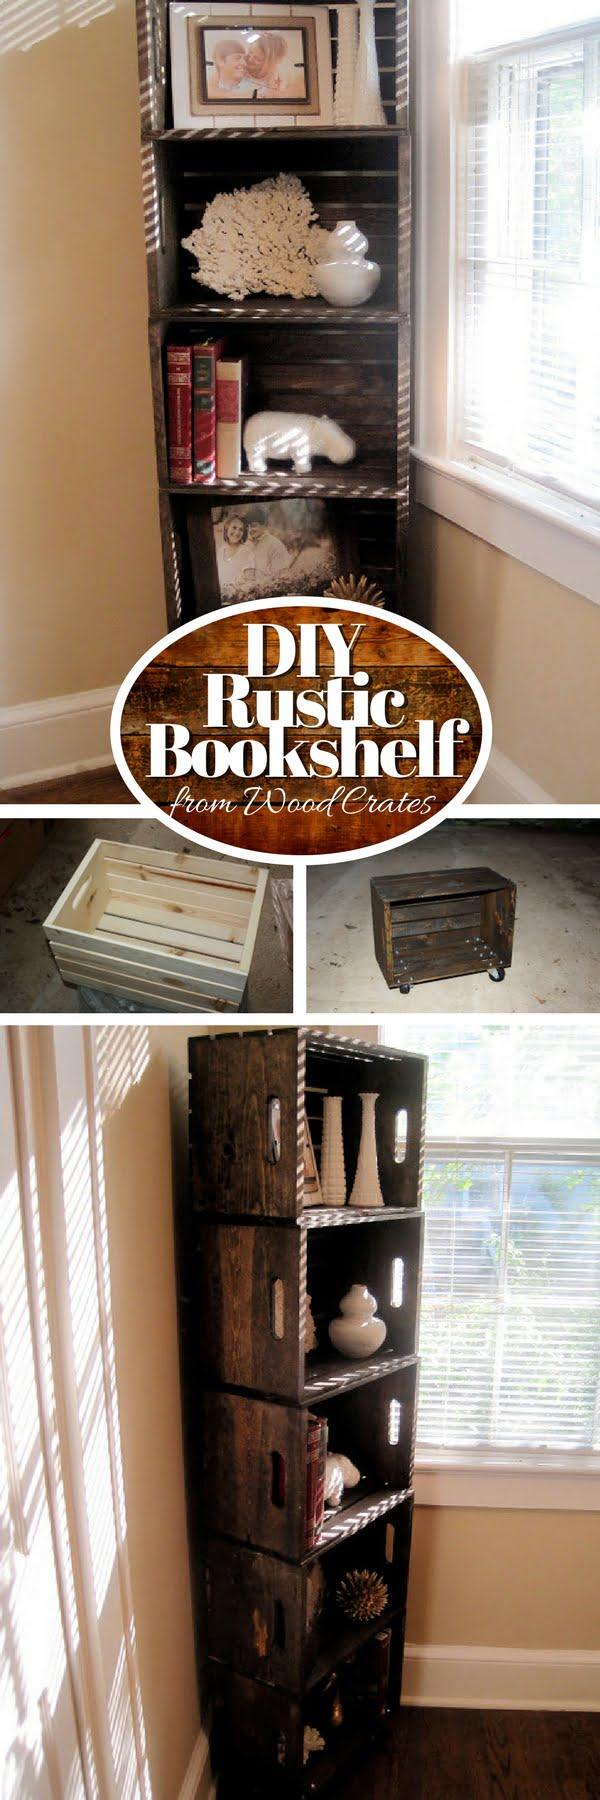 15 Brilliant DIY Crafts You Can Make with Wood Crates - Check out how to build an easy DIY bookshelf from wood crates